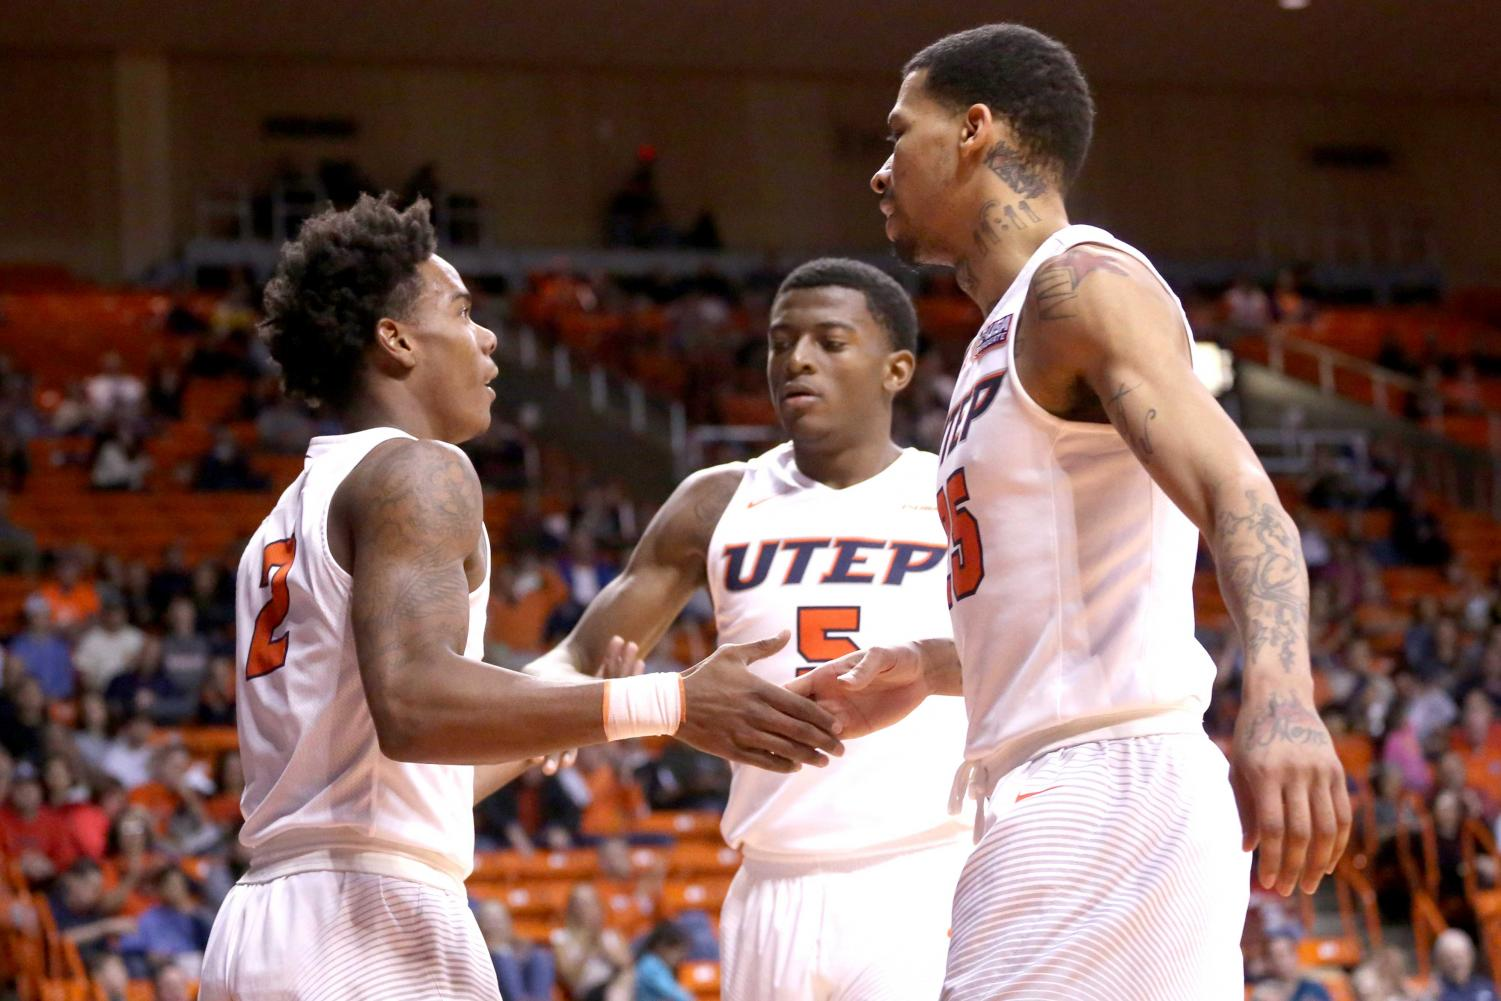 The UTEP men's basketball team will look to snap a five-game losing streak when they face UTSA for a second time this season.